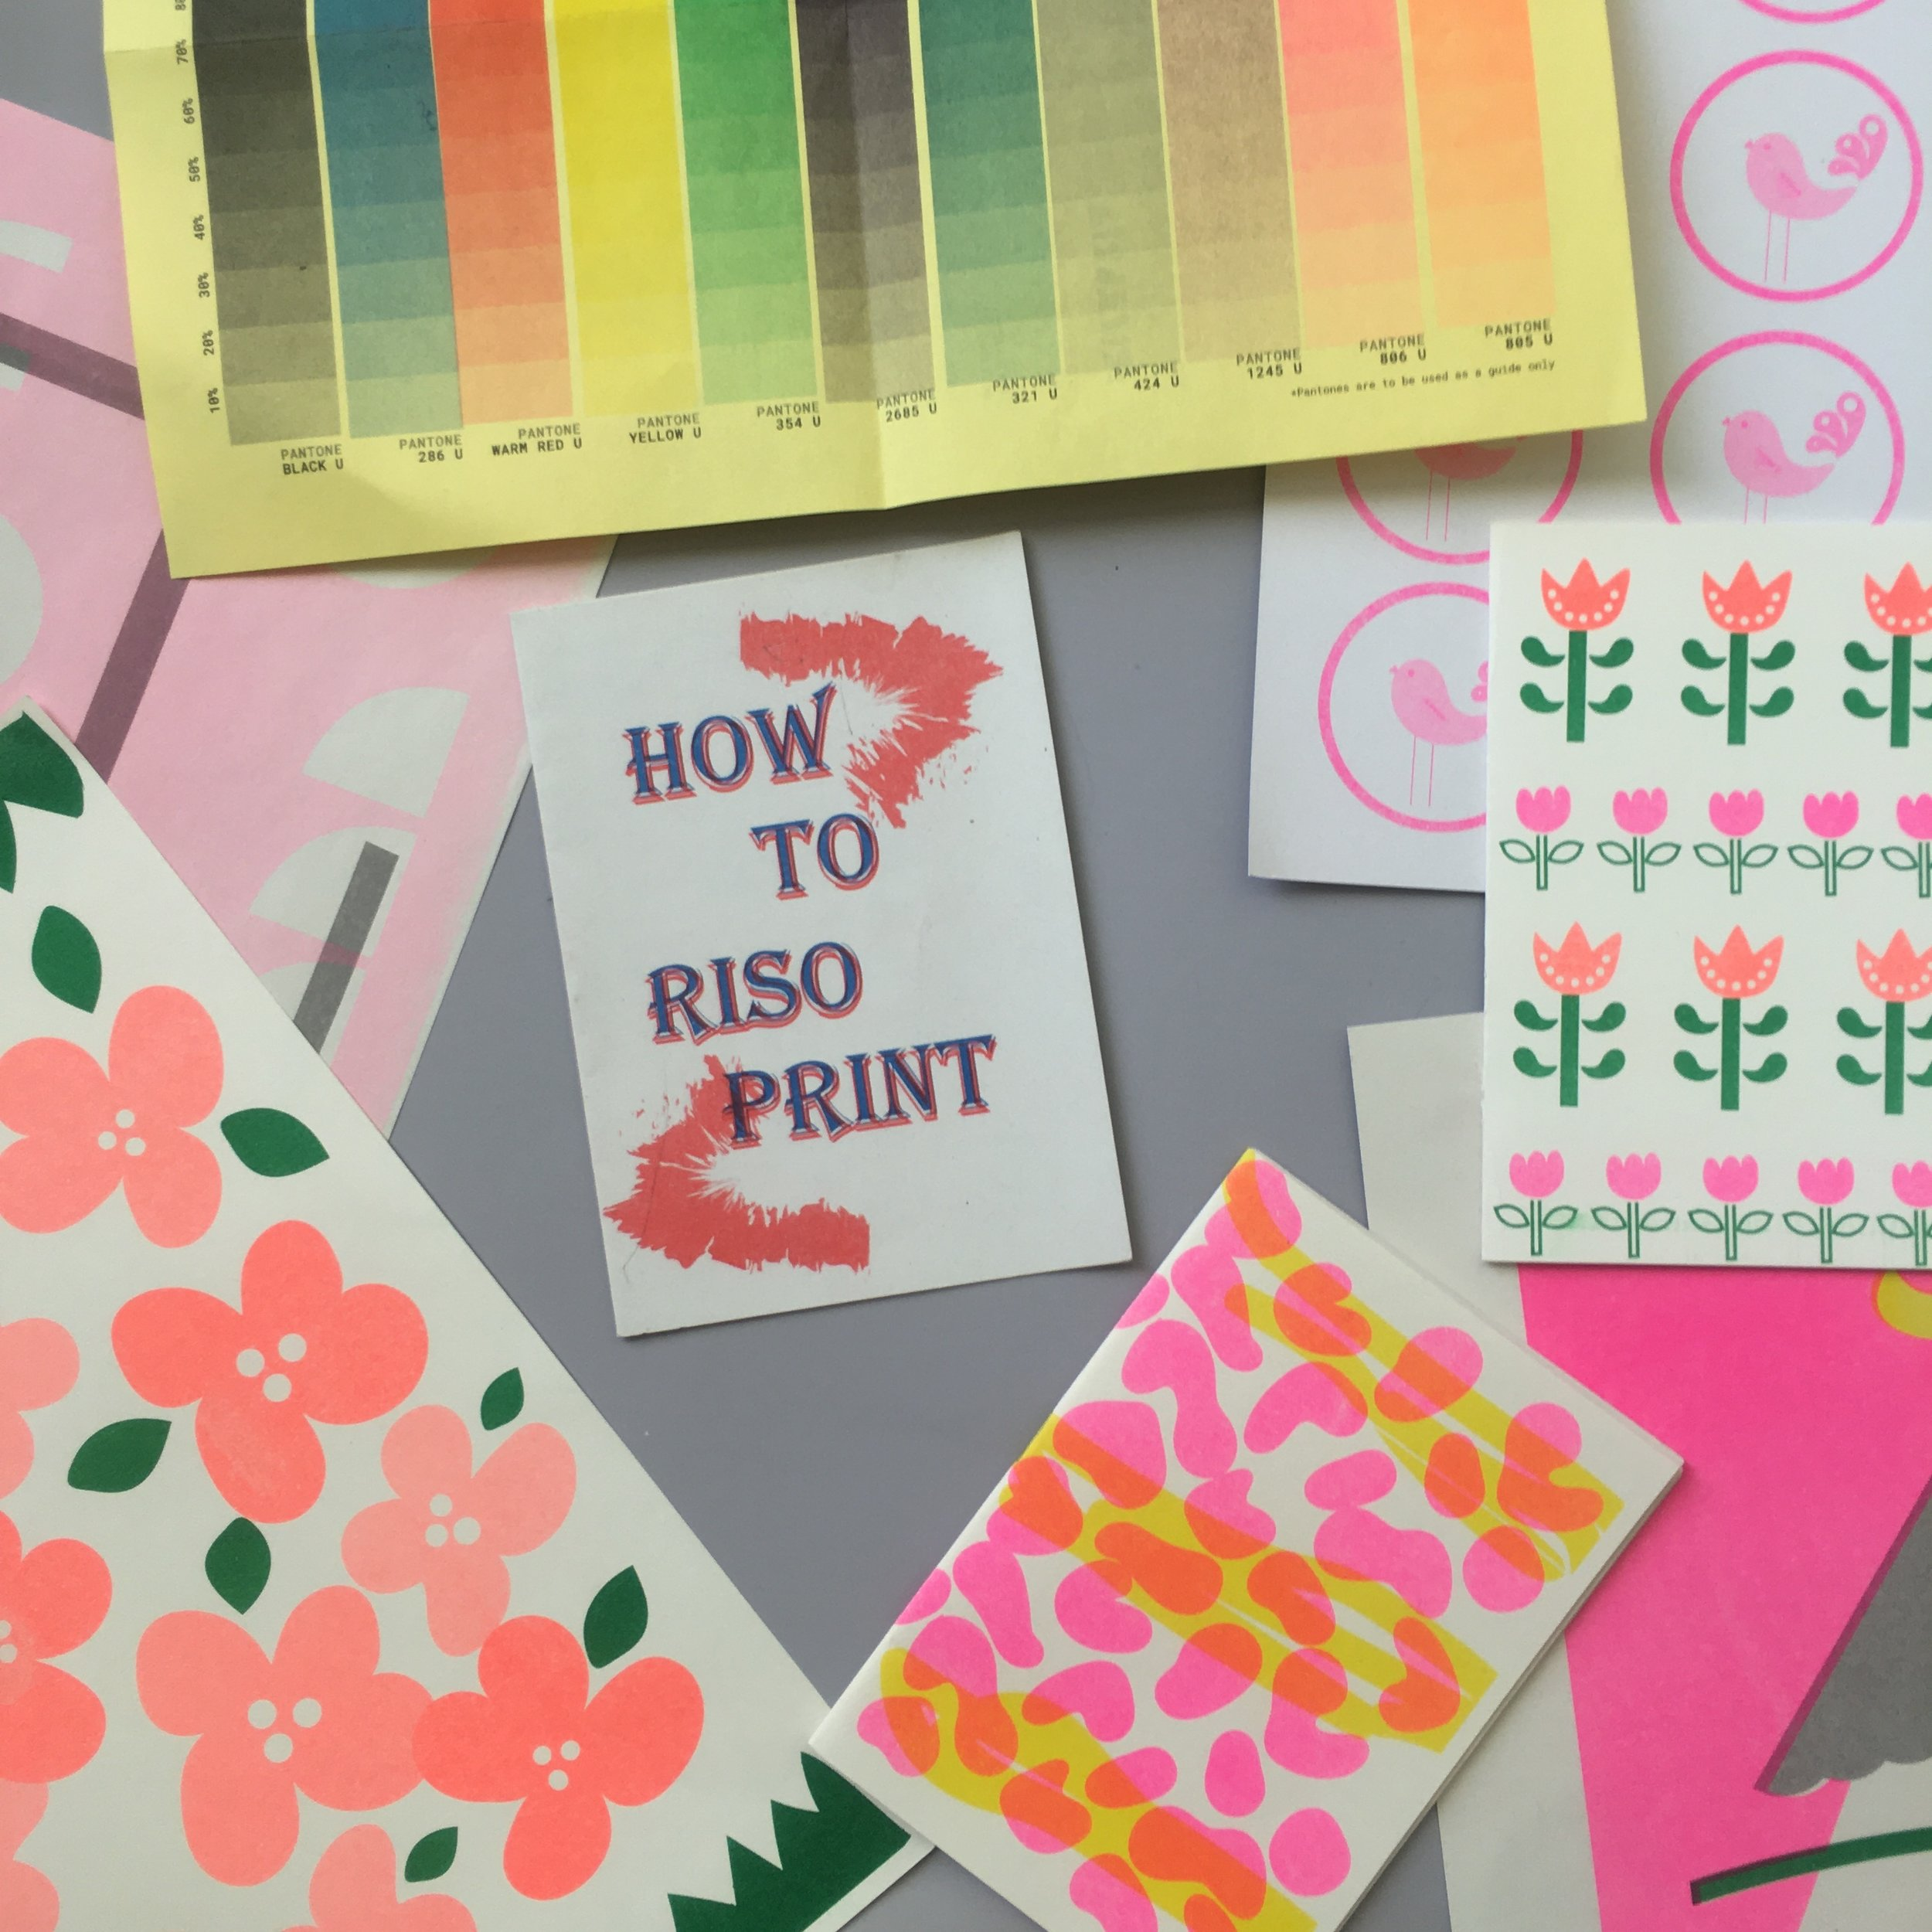 Learn to Riso Print - Saturday September 21st   Learn how to use a Risograph printer to make cool and unique prints